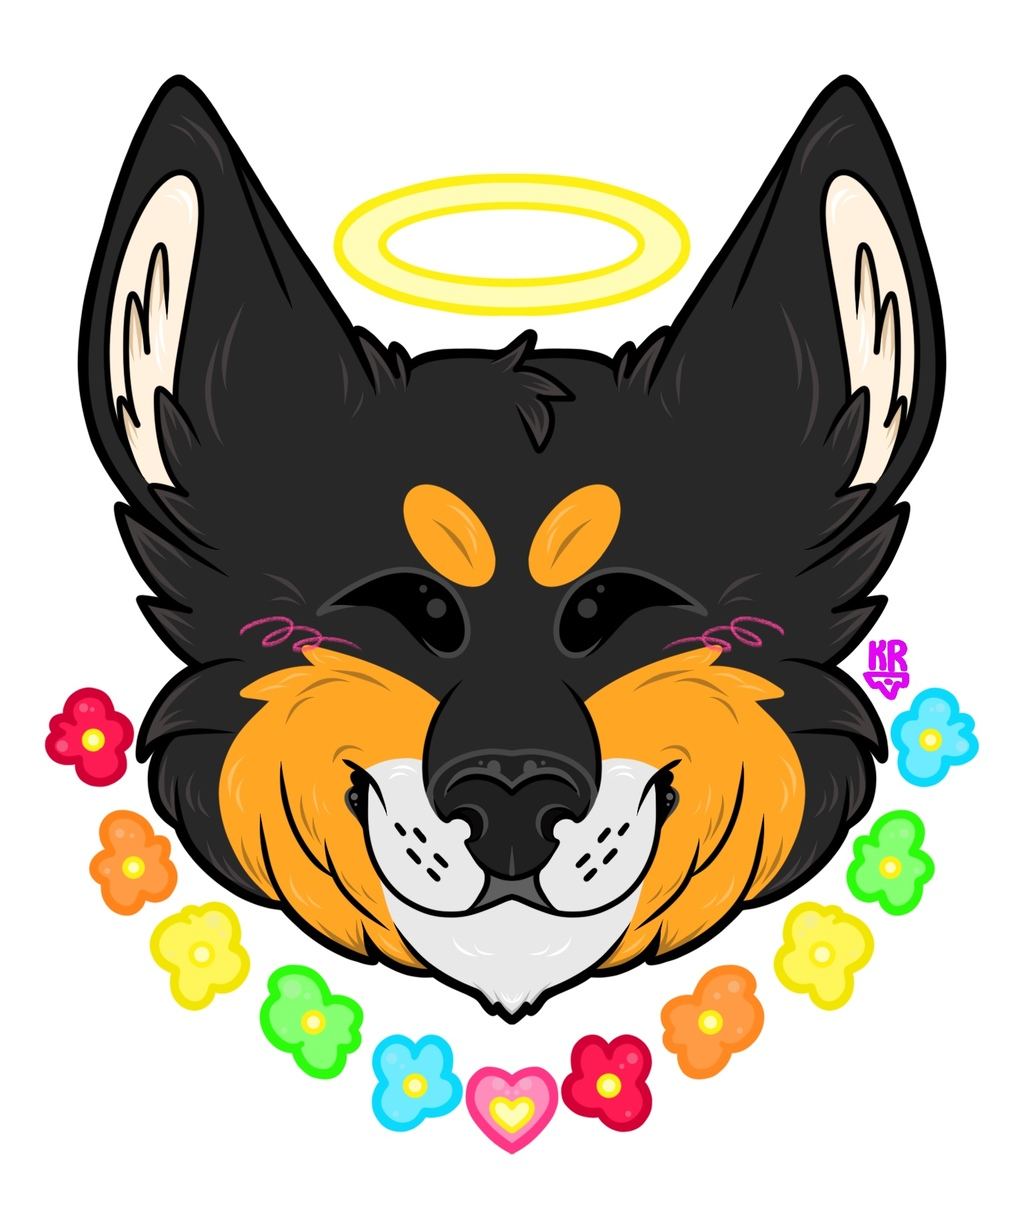 DogBomb Charity Sticker